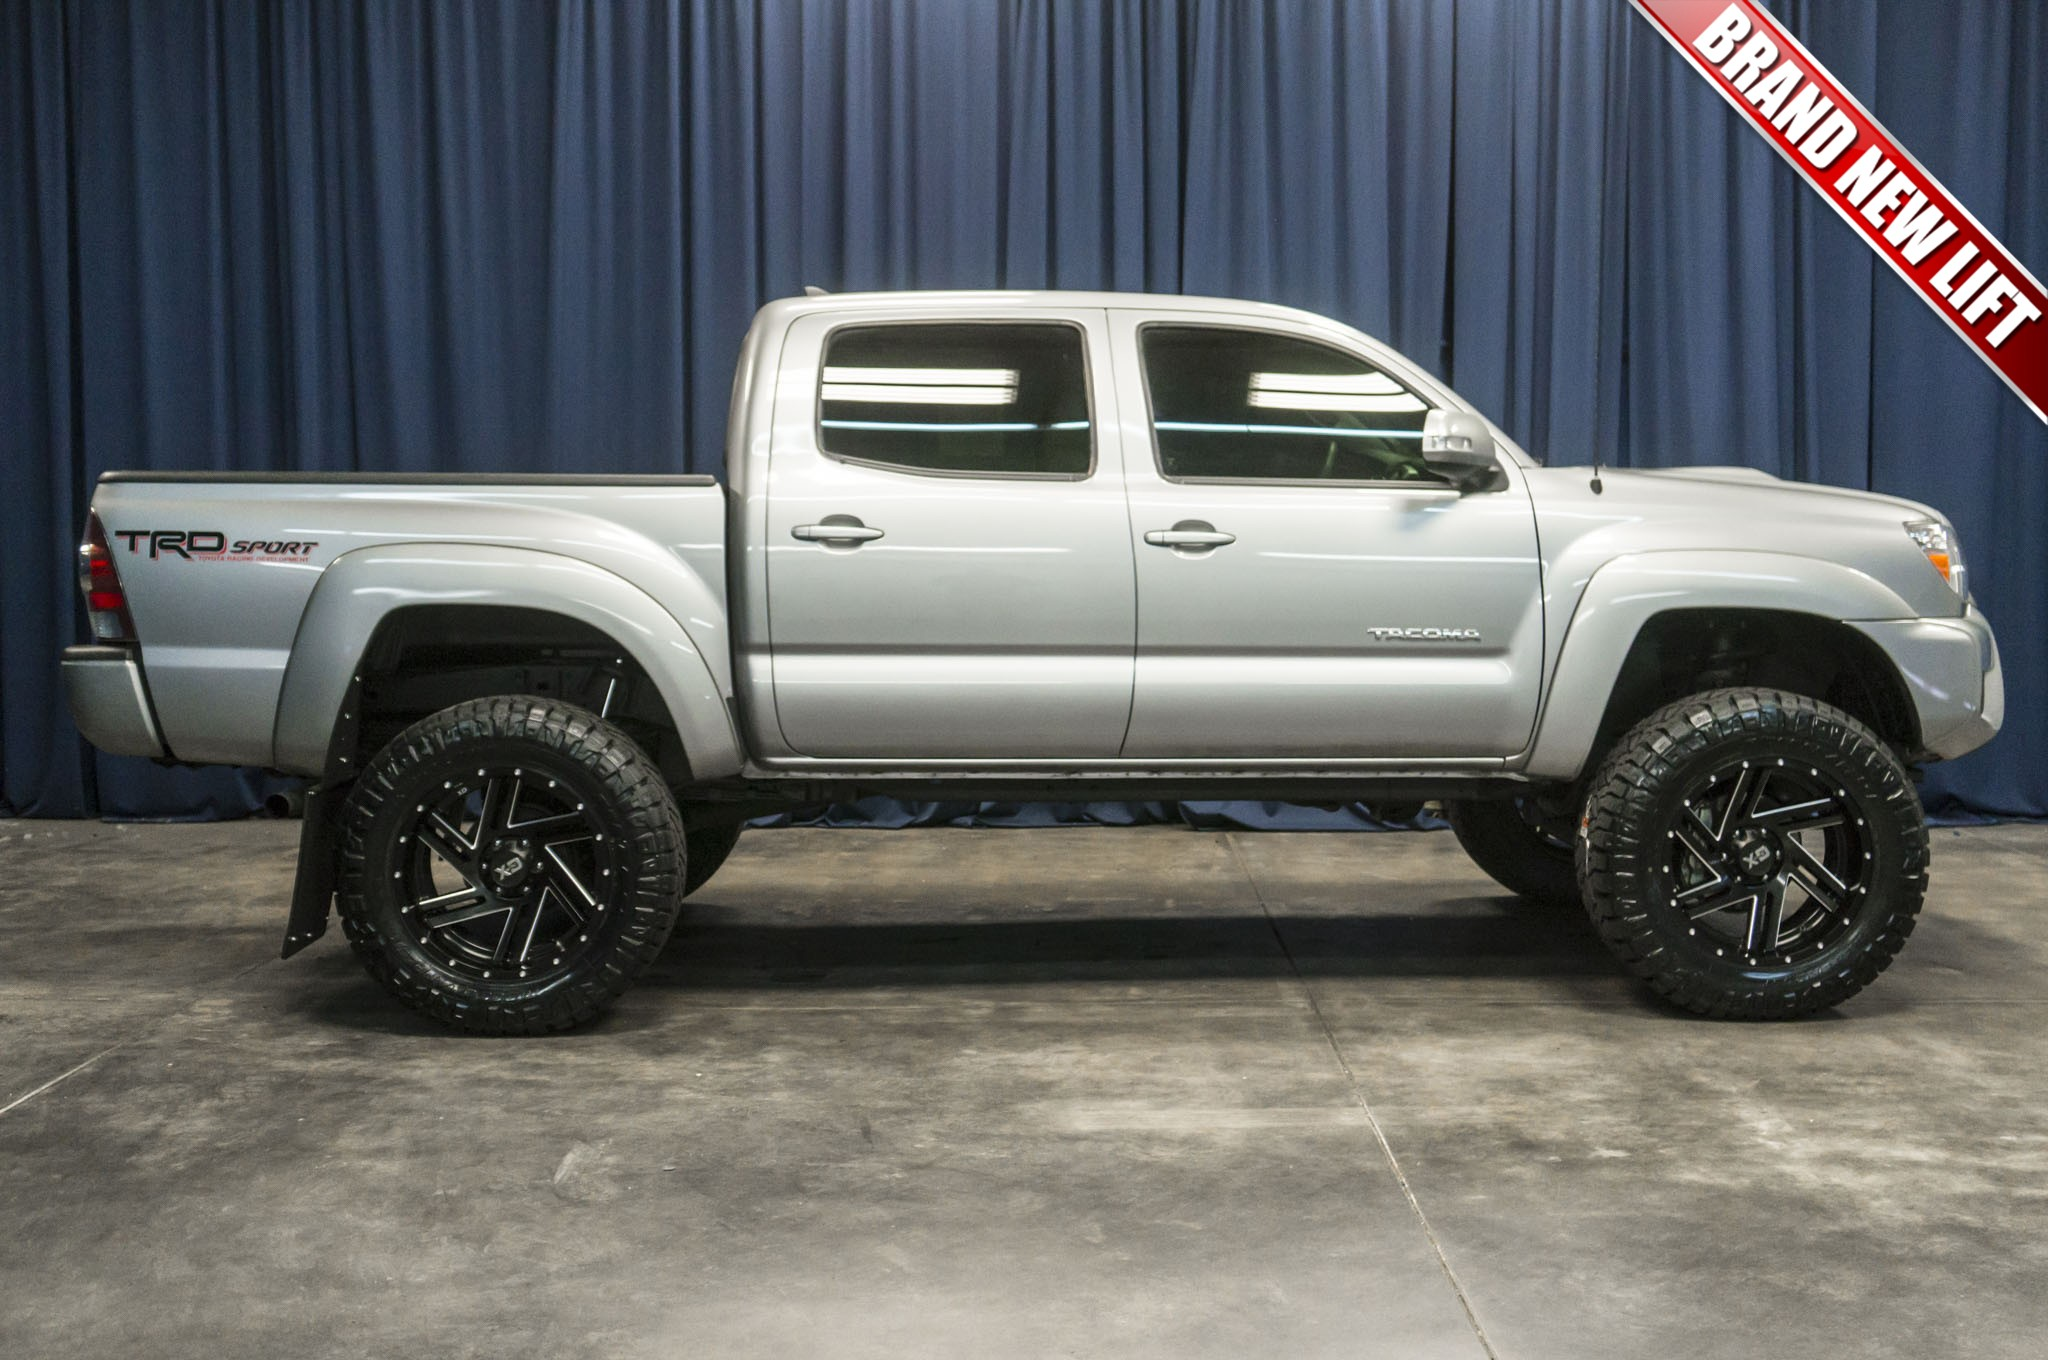 used lifted 2015 toyota tacoma trd sport 4x4 truck for sale 41855. Black Bedroom Furniture Sets. Home Design Ideas